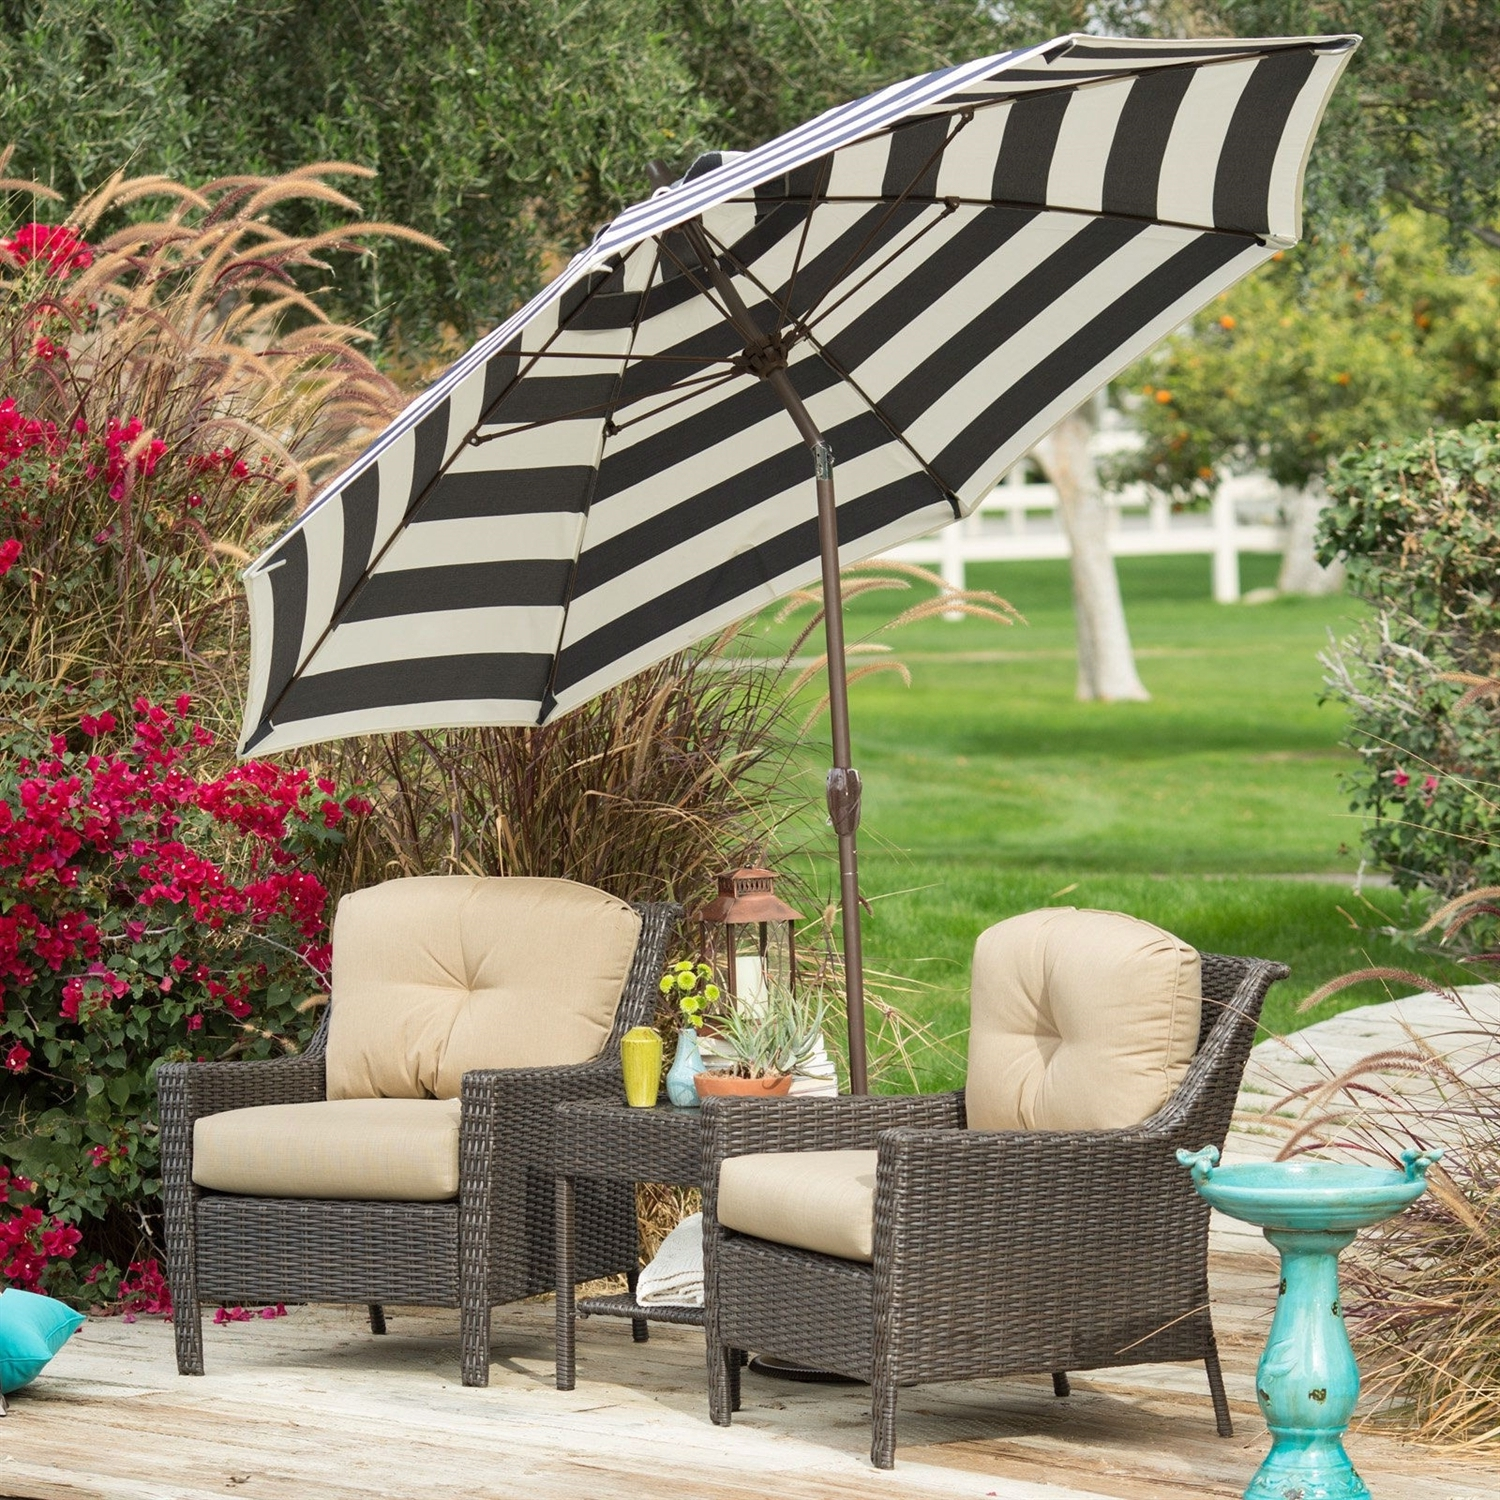 Current Stylish 9 Ft Market Patio Umbrella With Crank And Tilt In Dark Navy With White Patio Umbrellas (Gallery 12 of 20)